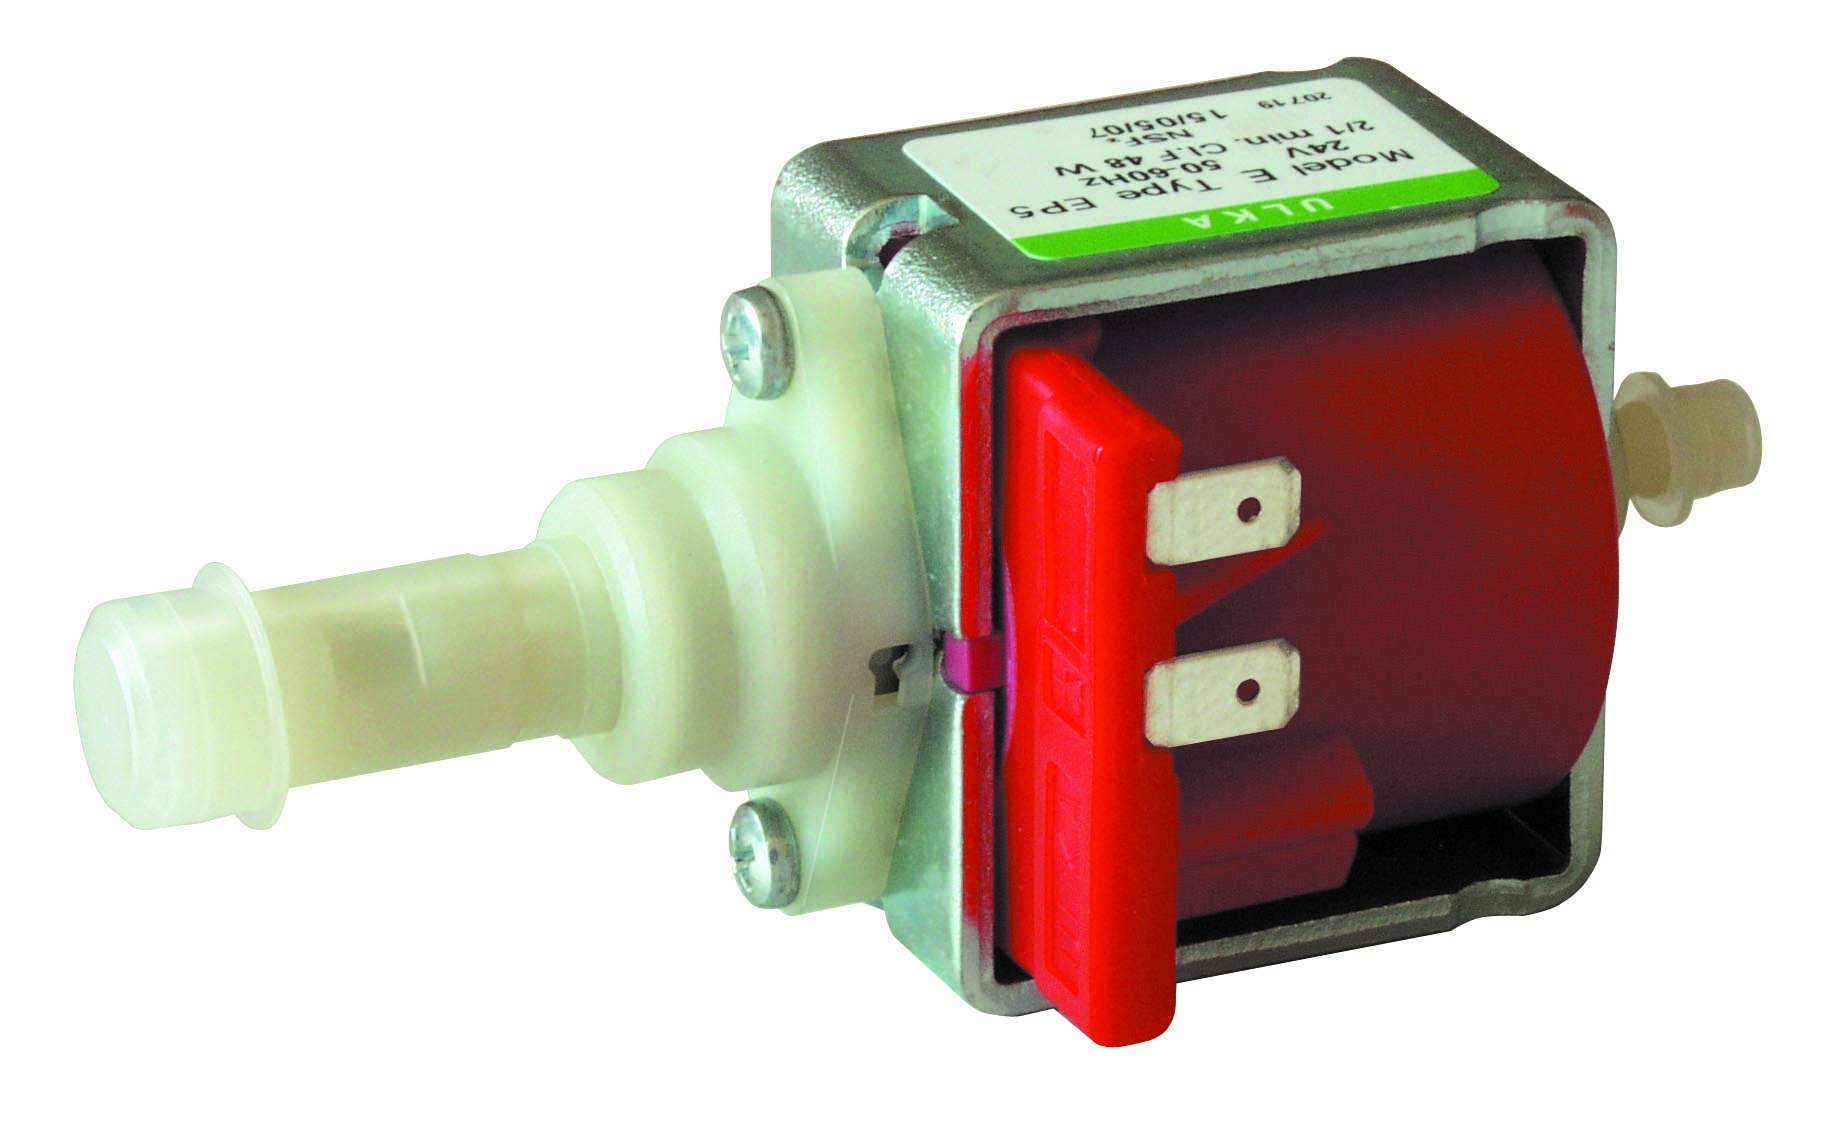 Ceme Solenoid Pump And Valve Trivolzio Pavia Water Pressure Switch Should Only Be Done On The S Pumps Peripheral Valves Switches